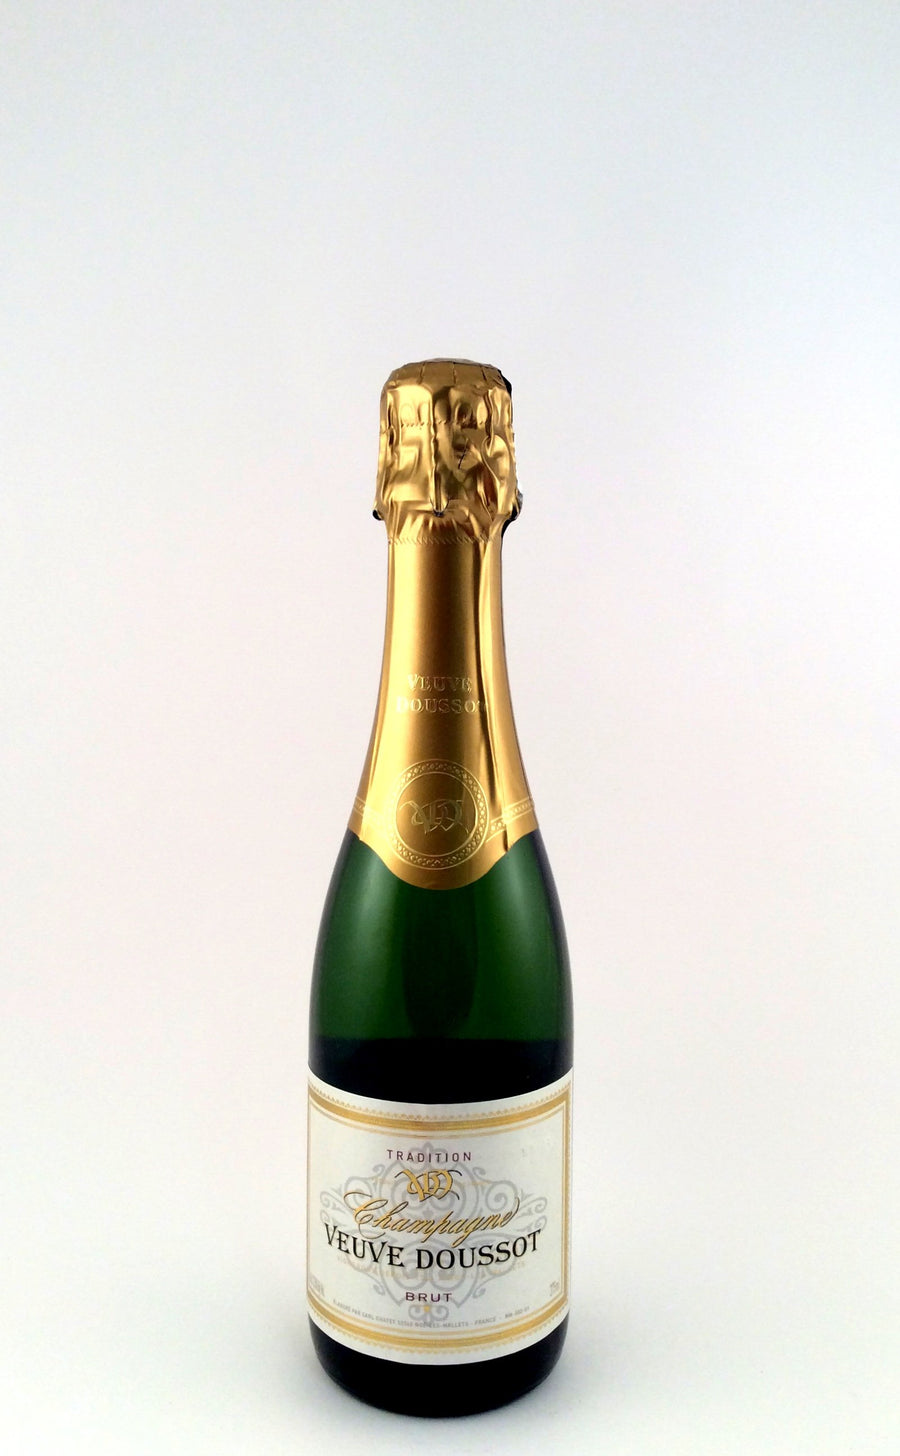 Veuve Doussot Champagne Tradition 375ml - Wineseeker